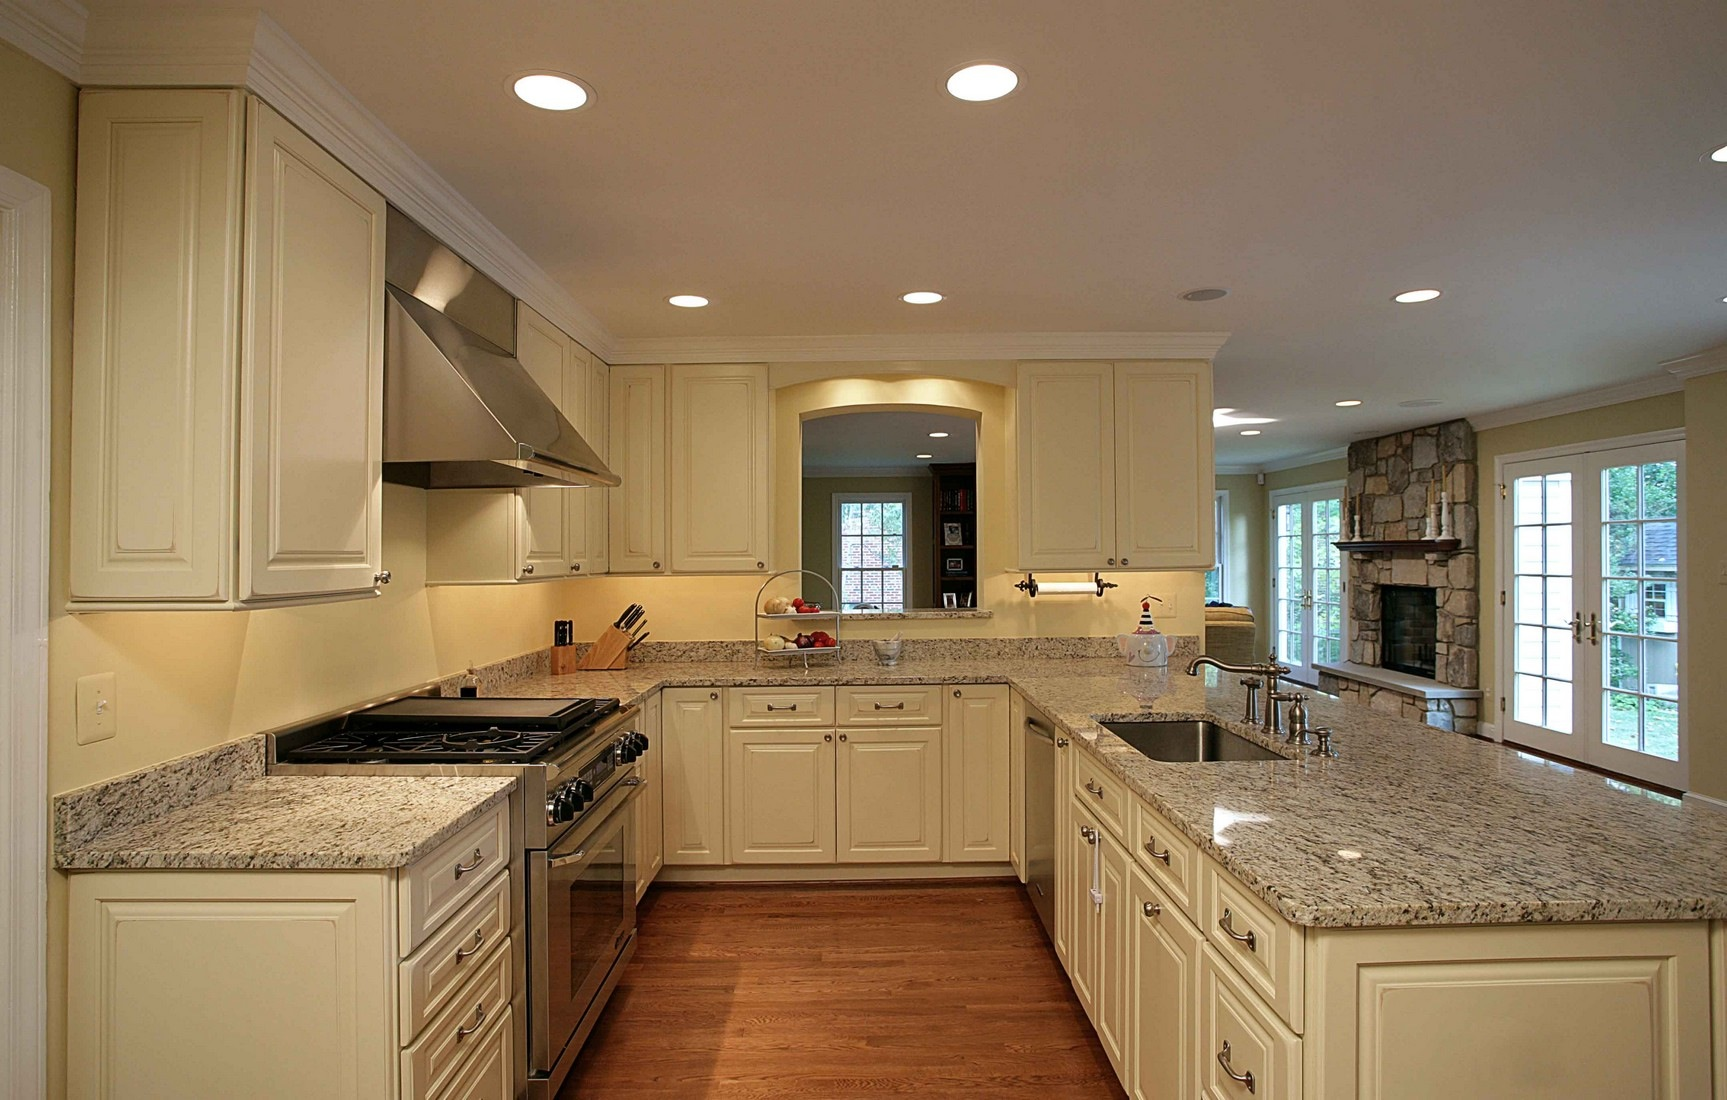 Kitchen Remodeling In Maryland Exterior Interior Mesmerizing Chevy Chase Maryland Home Remodeling Design Inspiration